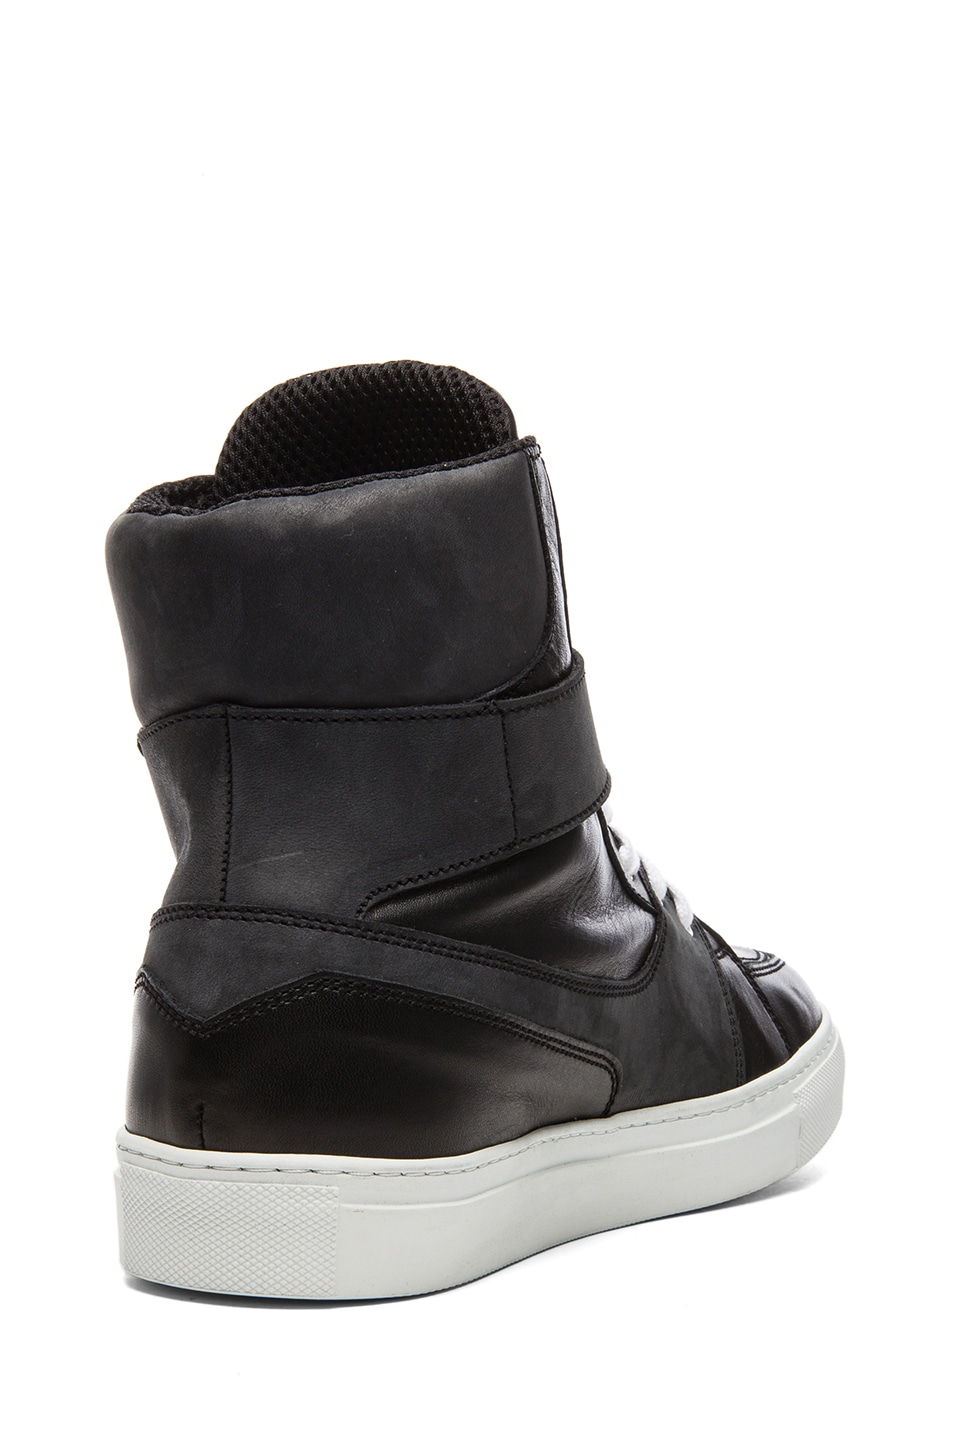 6435b4b3a1 Image 3 of Kris Van Assche Calfskin Leather High Top Sneaker in Black